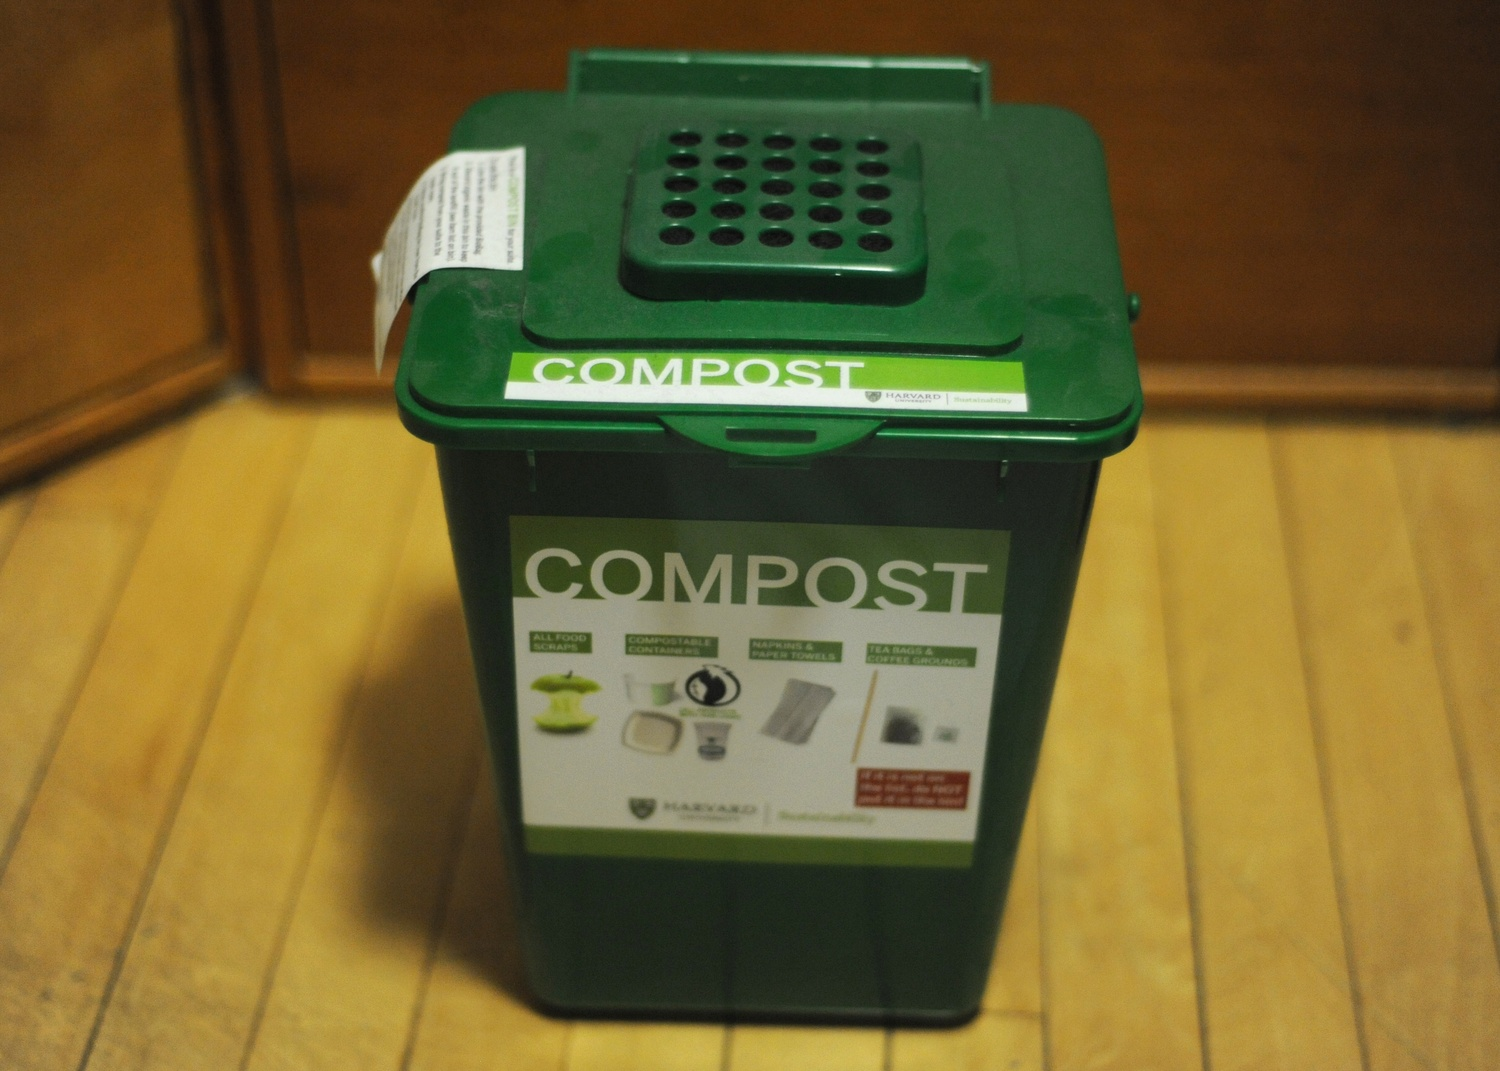 A compost bin sits on the floor of a freshman dorm room Friday night. These compost bins were placed in freshman dorm rooms to encourage composting and sustainability.